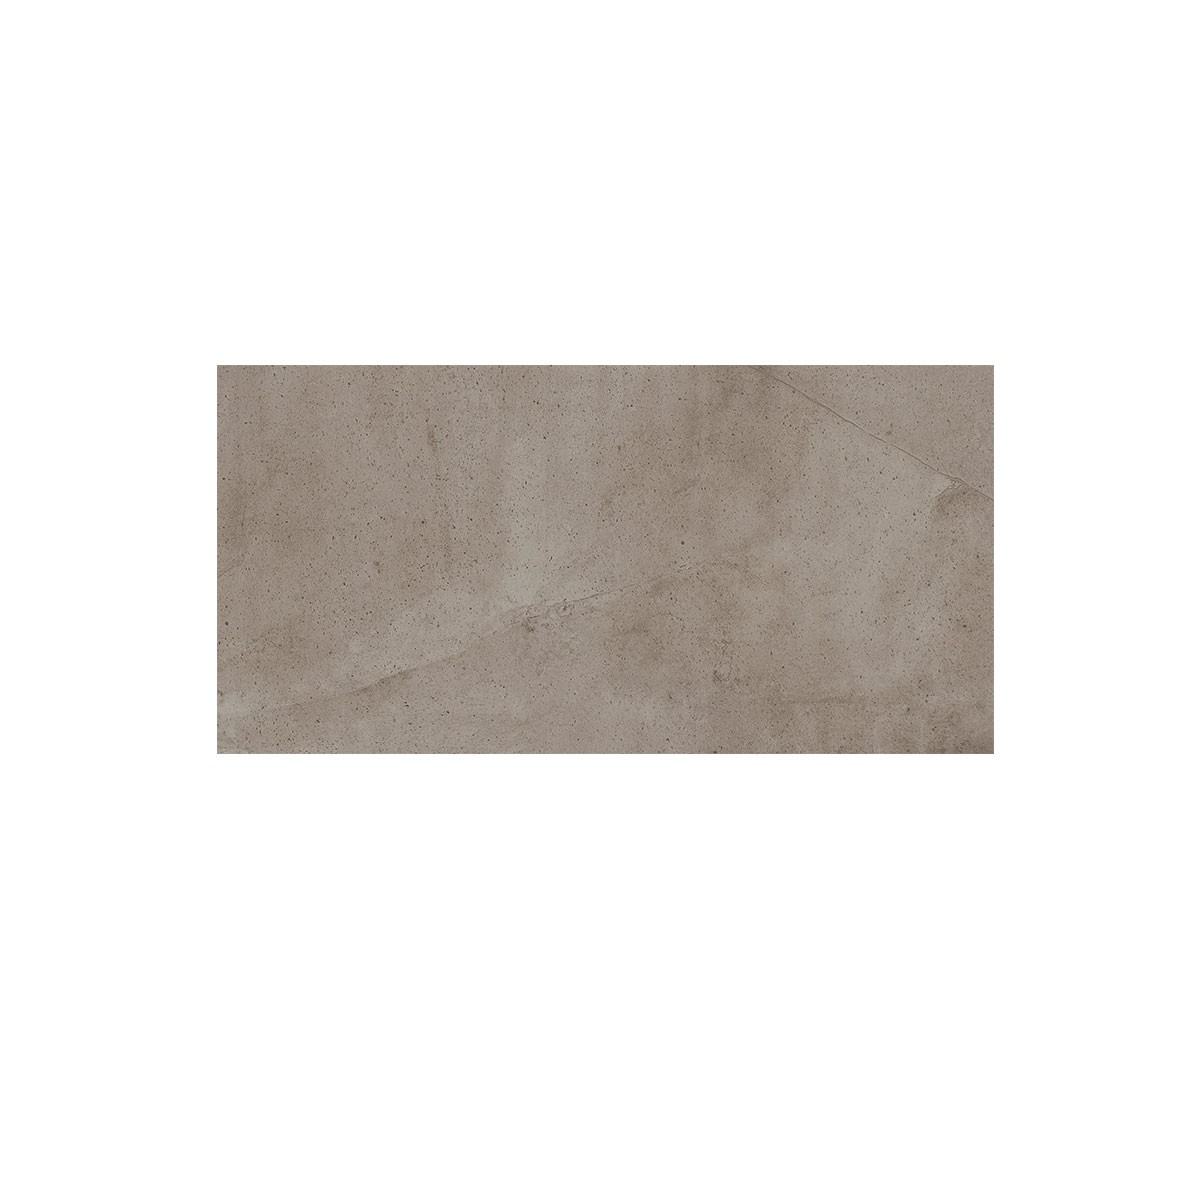 DECORAPORT NWS Wall Panel, Classic Stone, 4'' x6'' (NCS-01) (Sample)